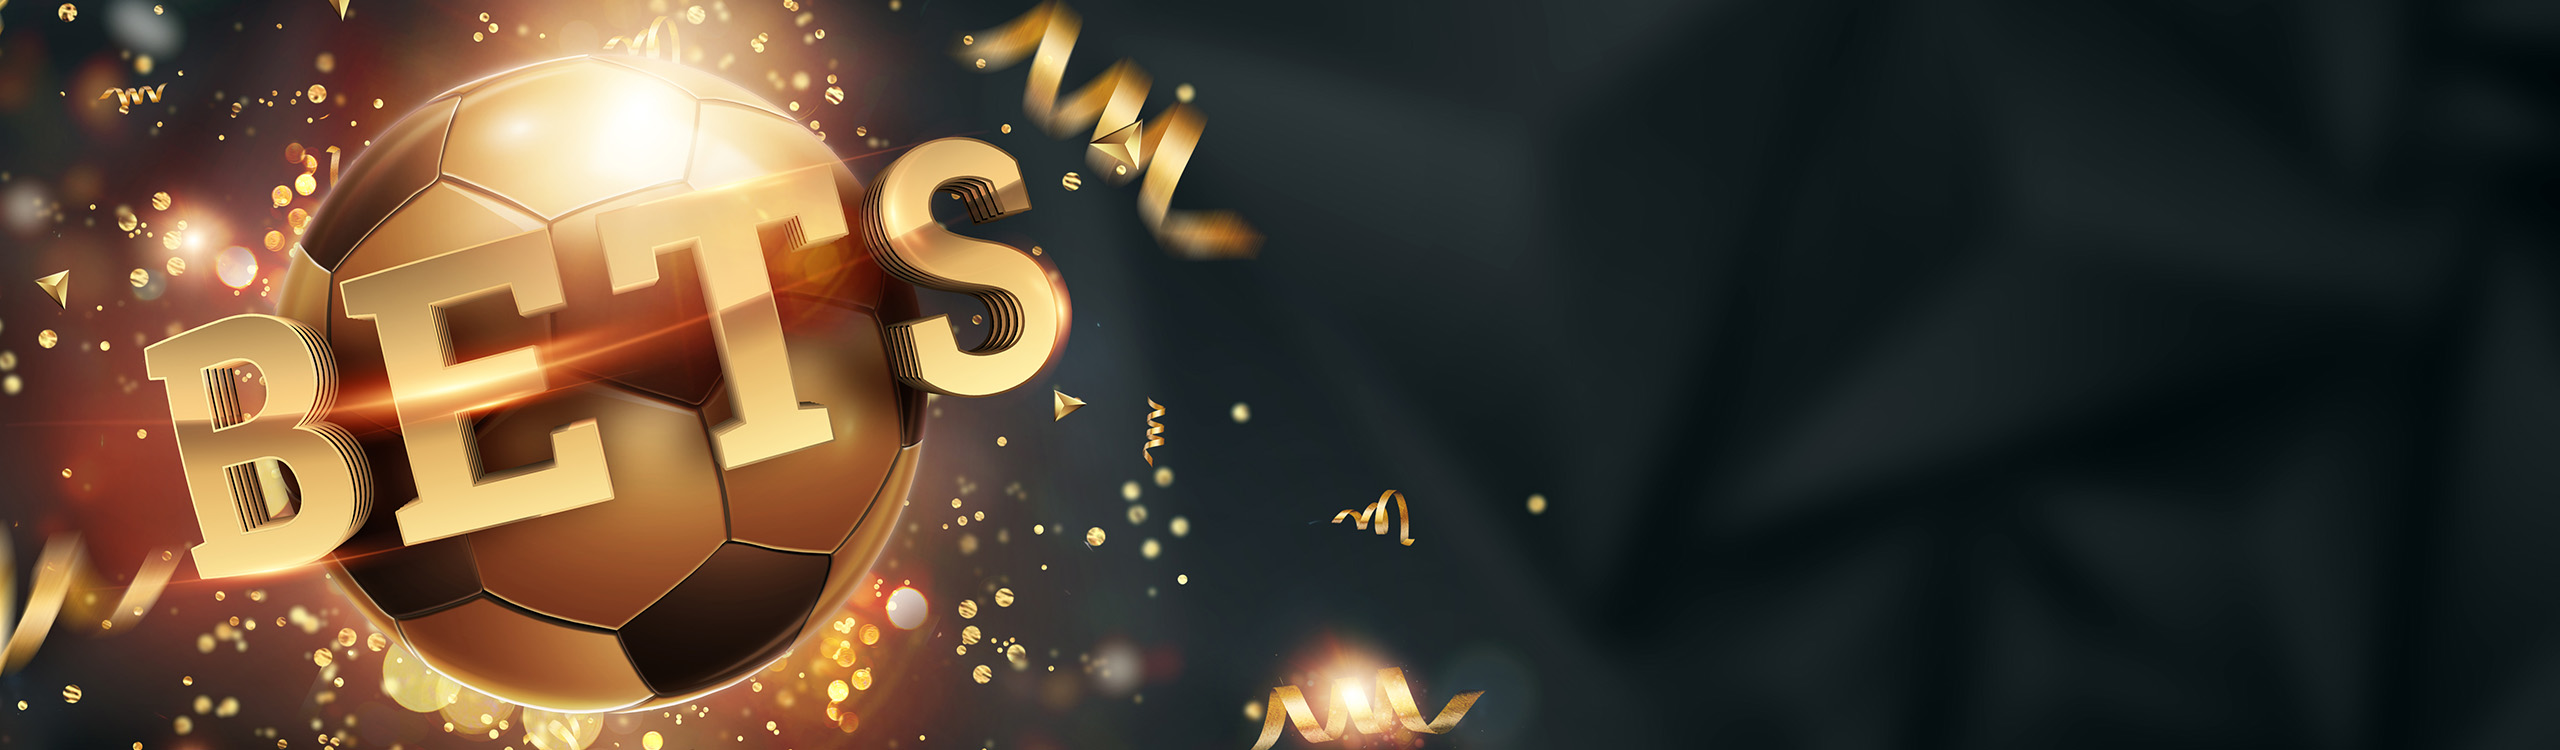 We Have Created A Range of Features DesignedTo Make Your Online Experience Even Better